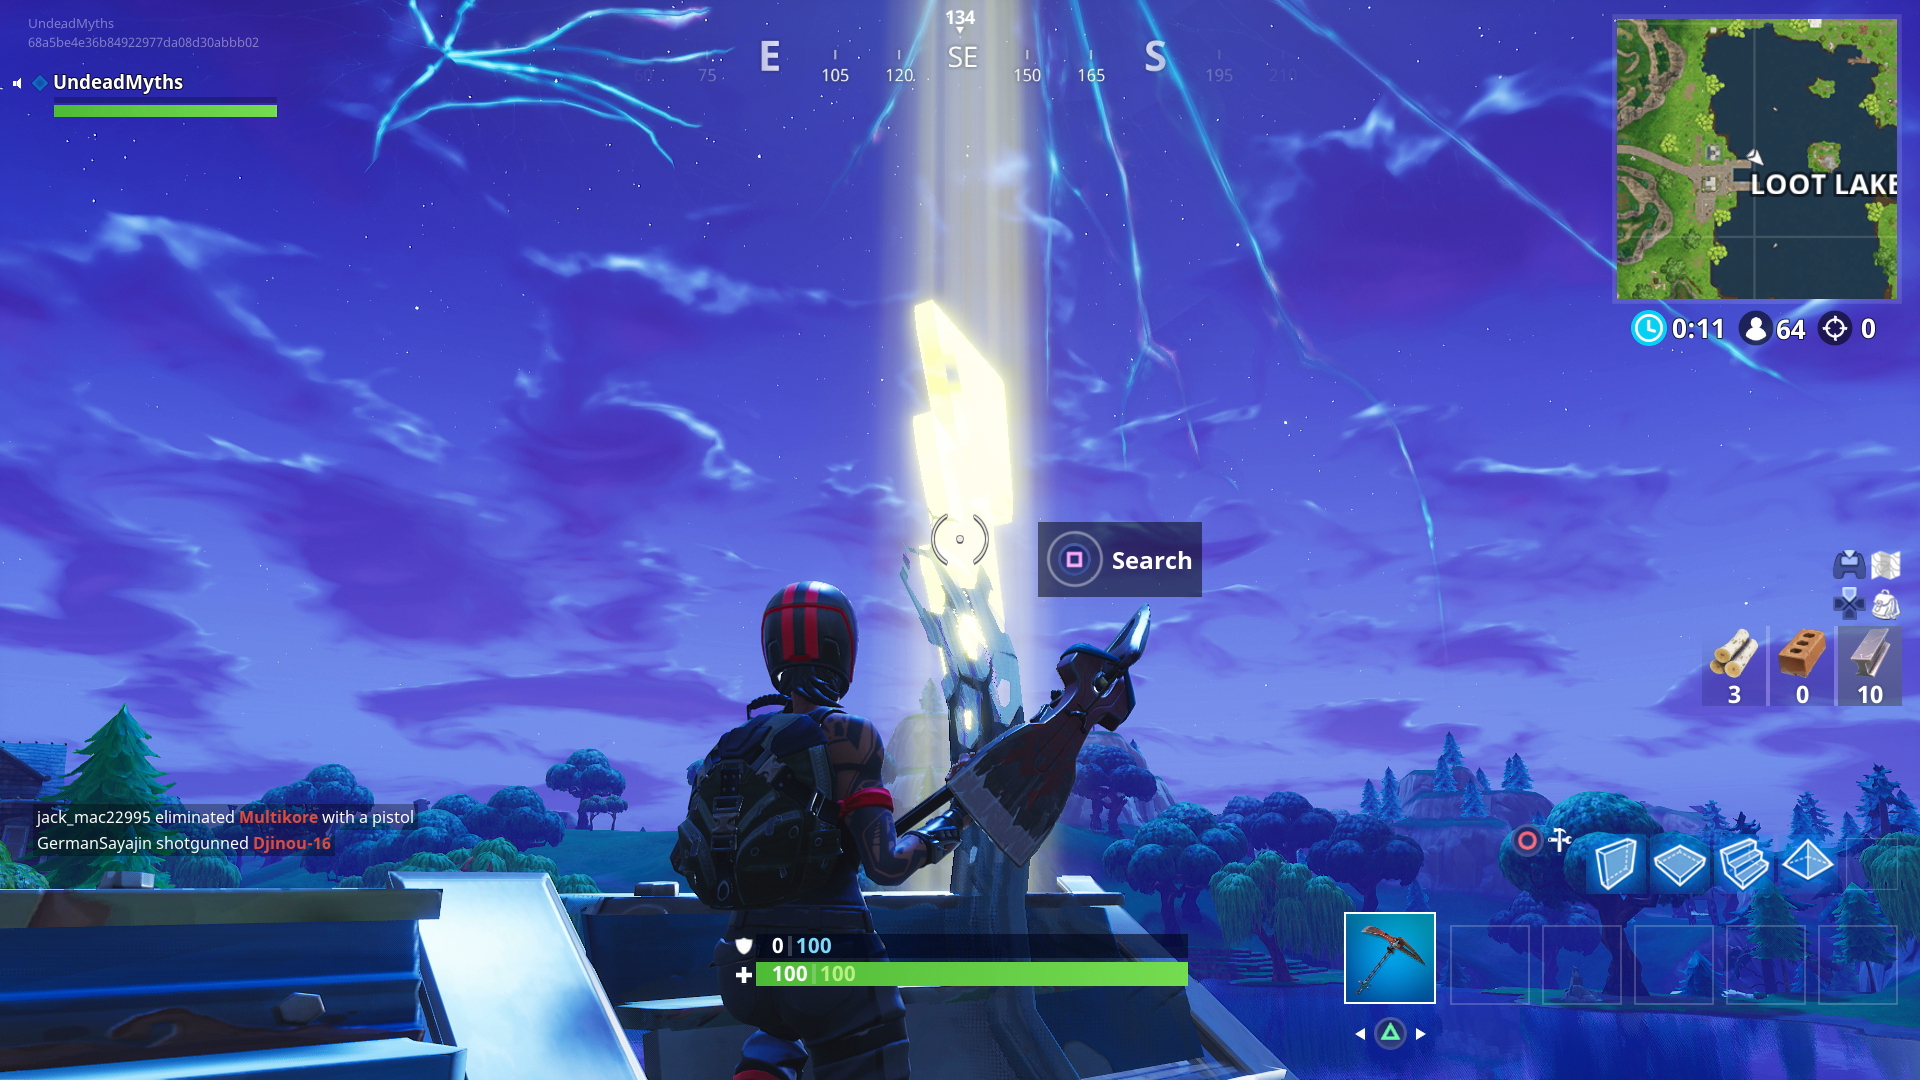 Fortnite Lightning Bolts All Lightning Bolt Locations Search Floating Lightning Bolts In Fortnite Usgamer